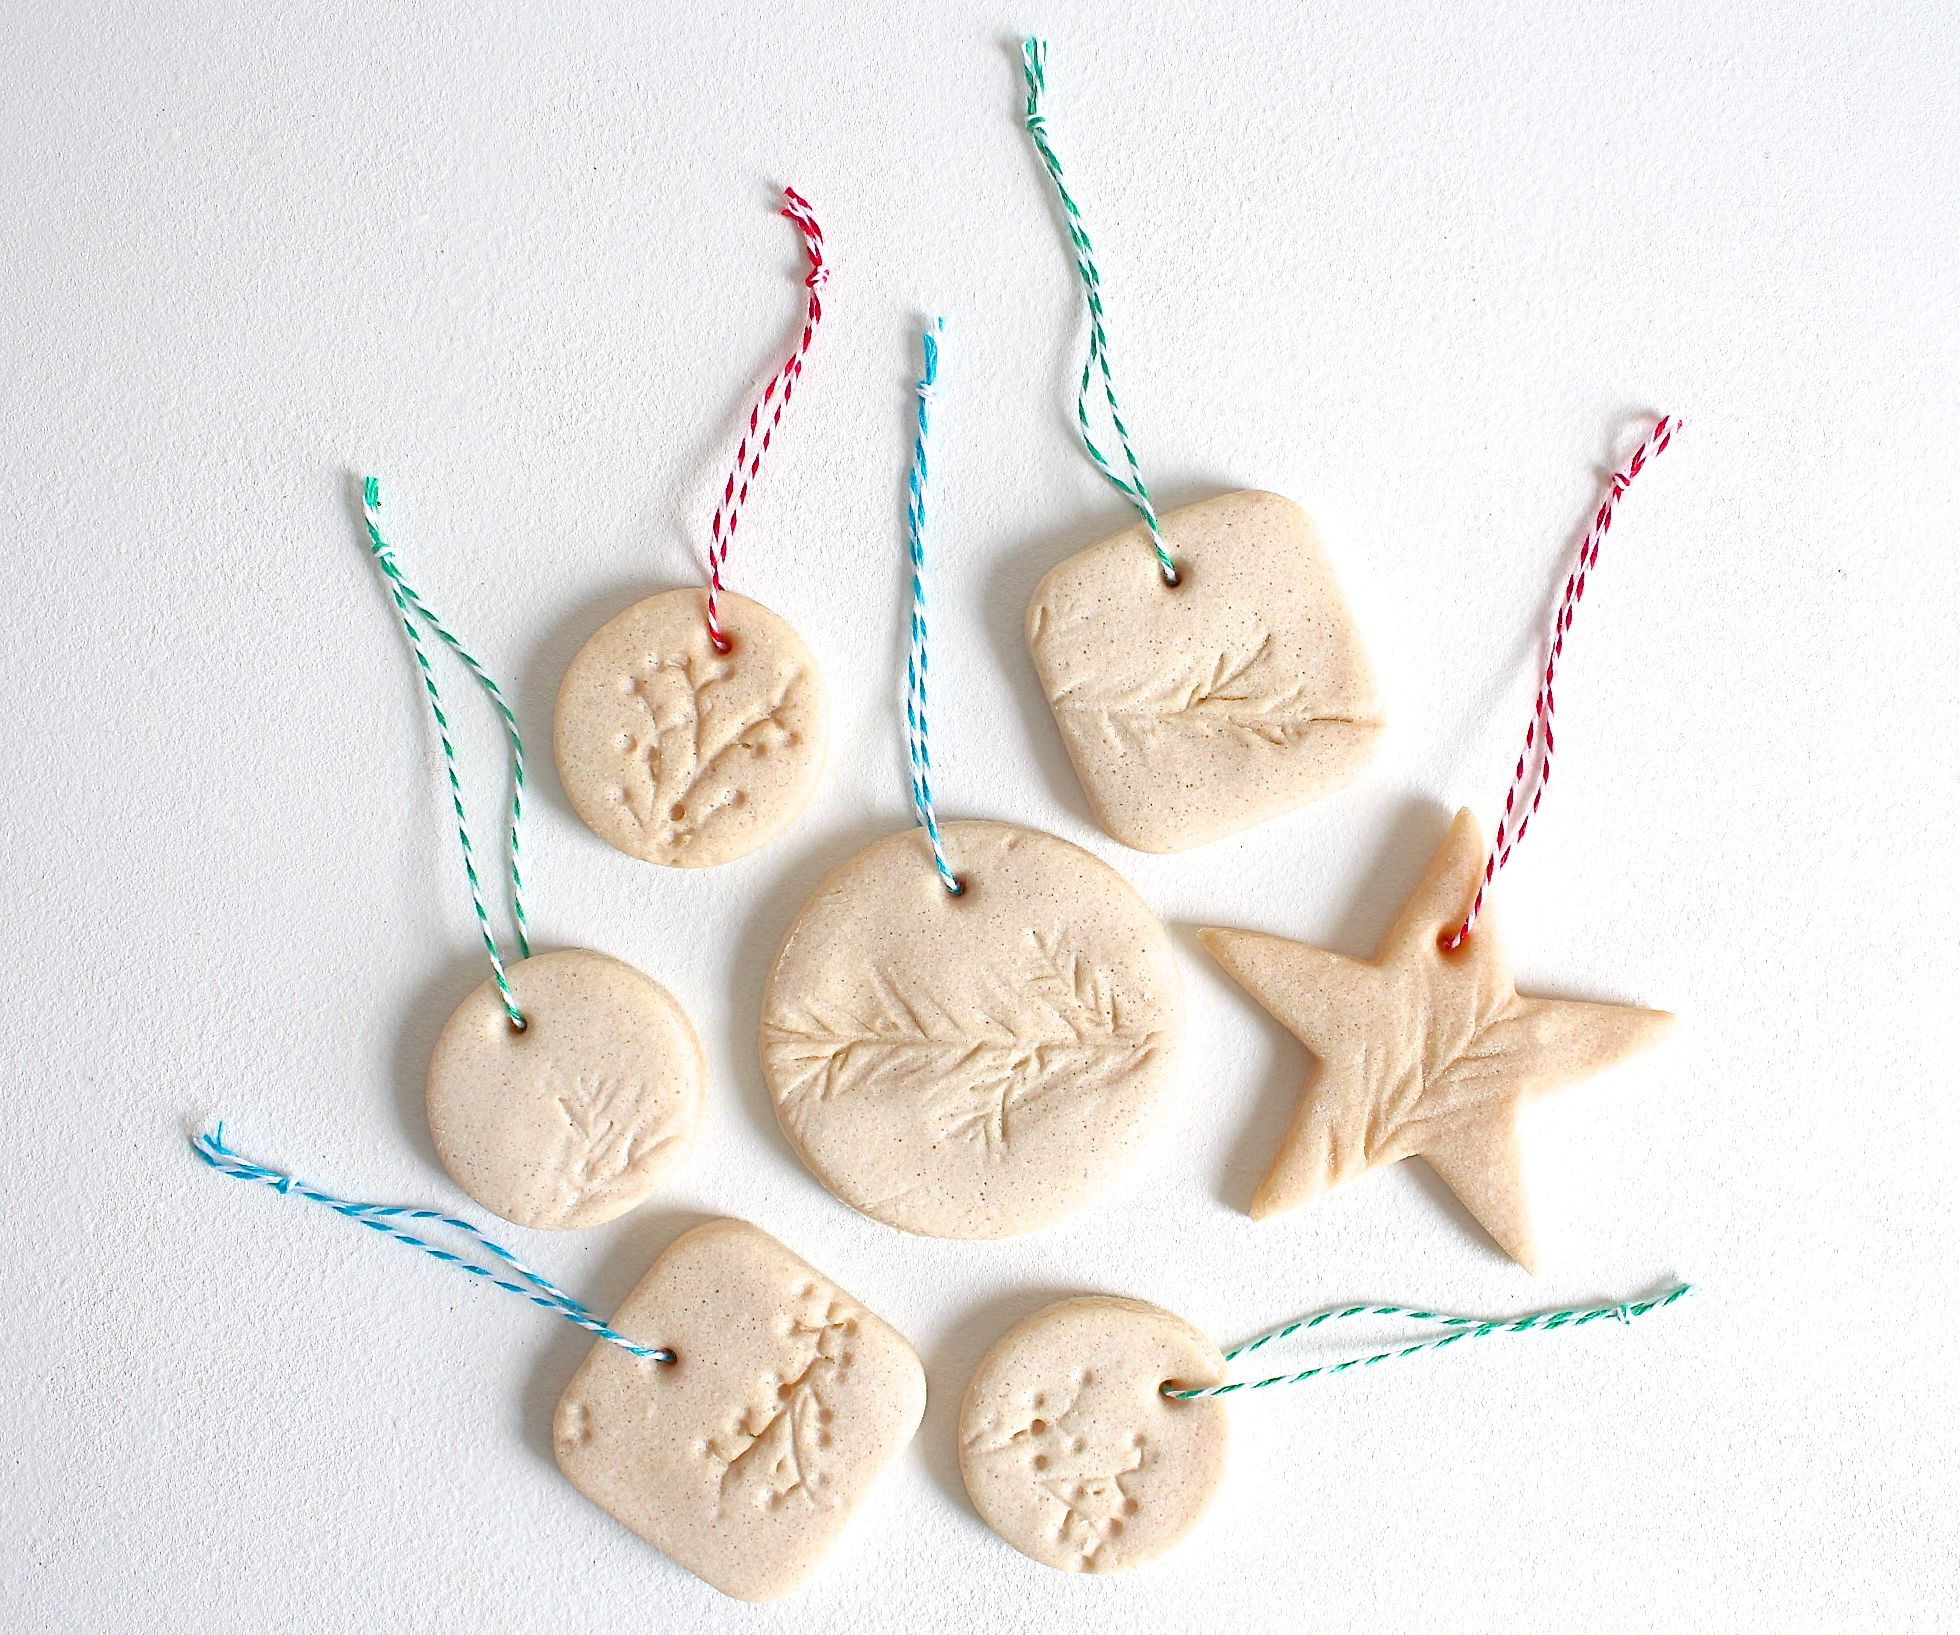 How to Make Salt Dough Ornaments: 5 Steps (with Pictures)